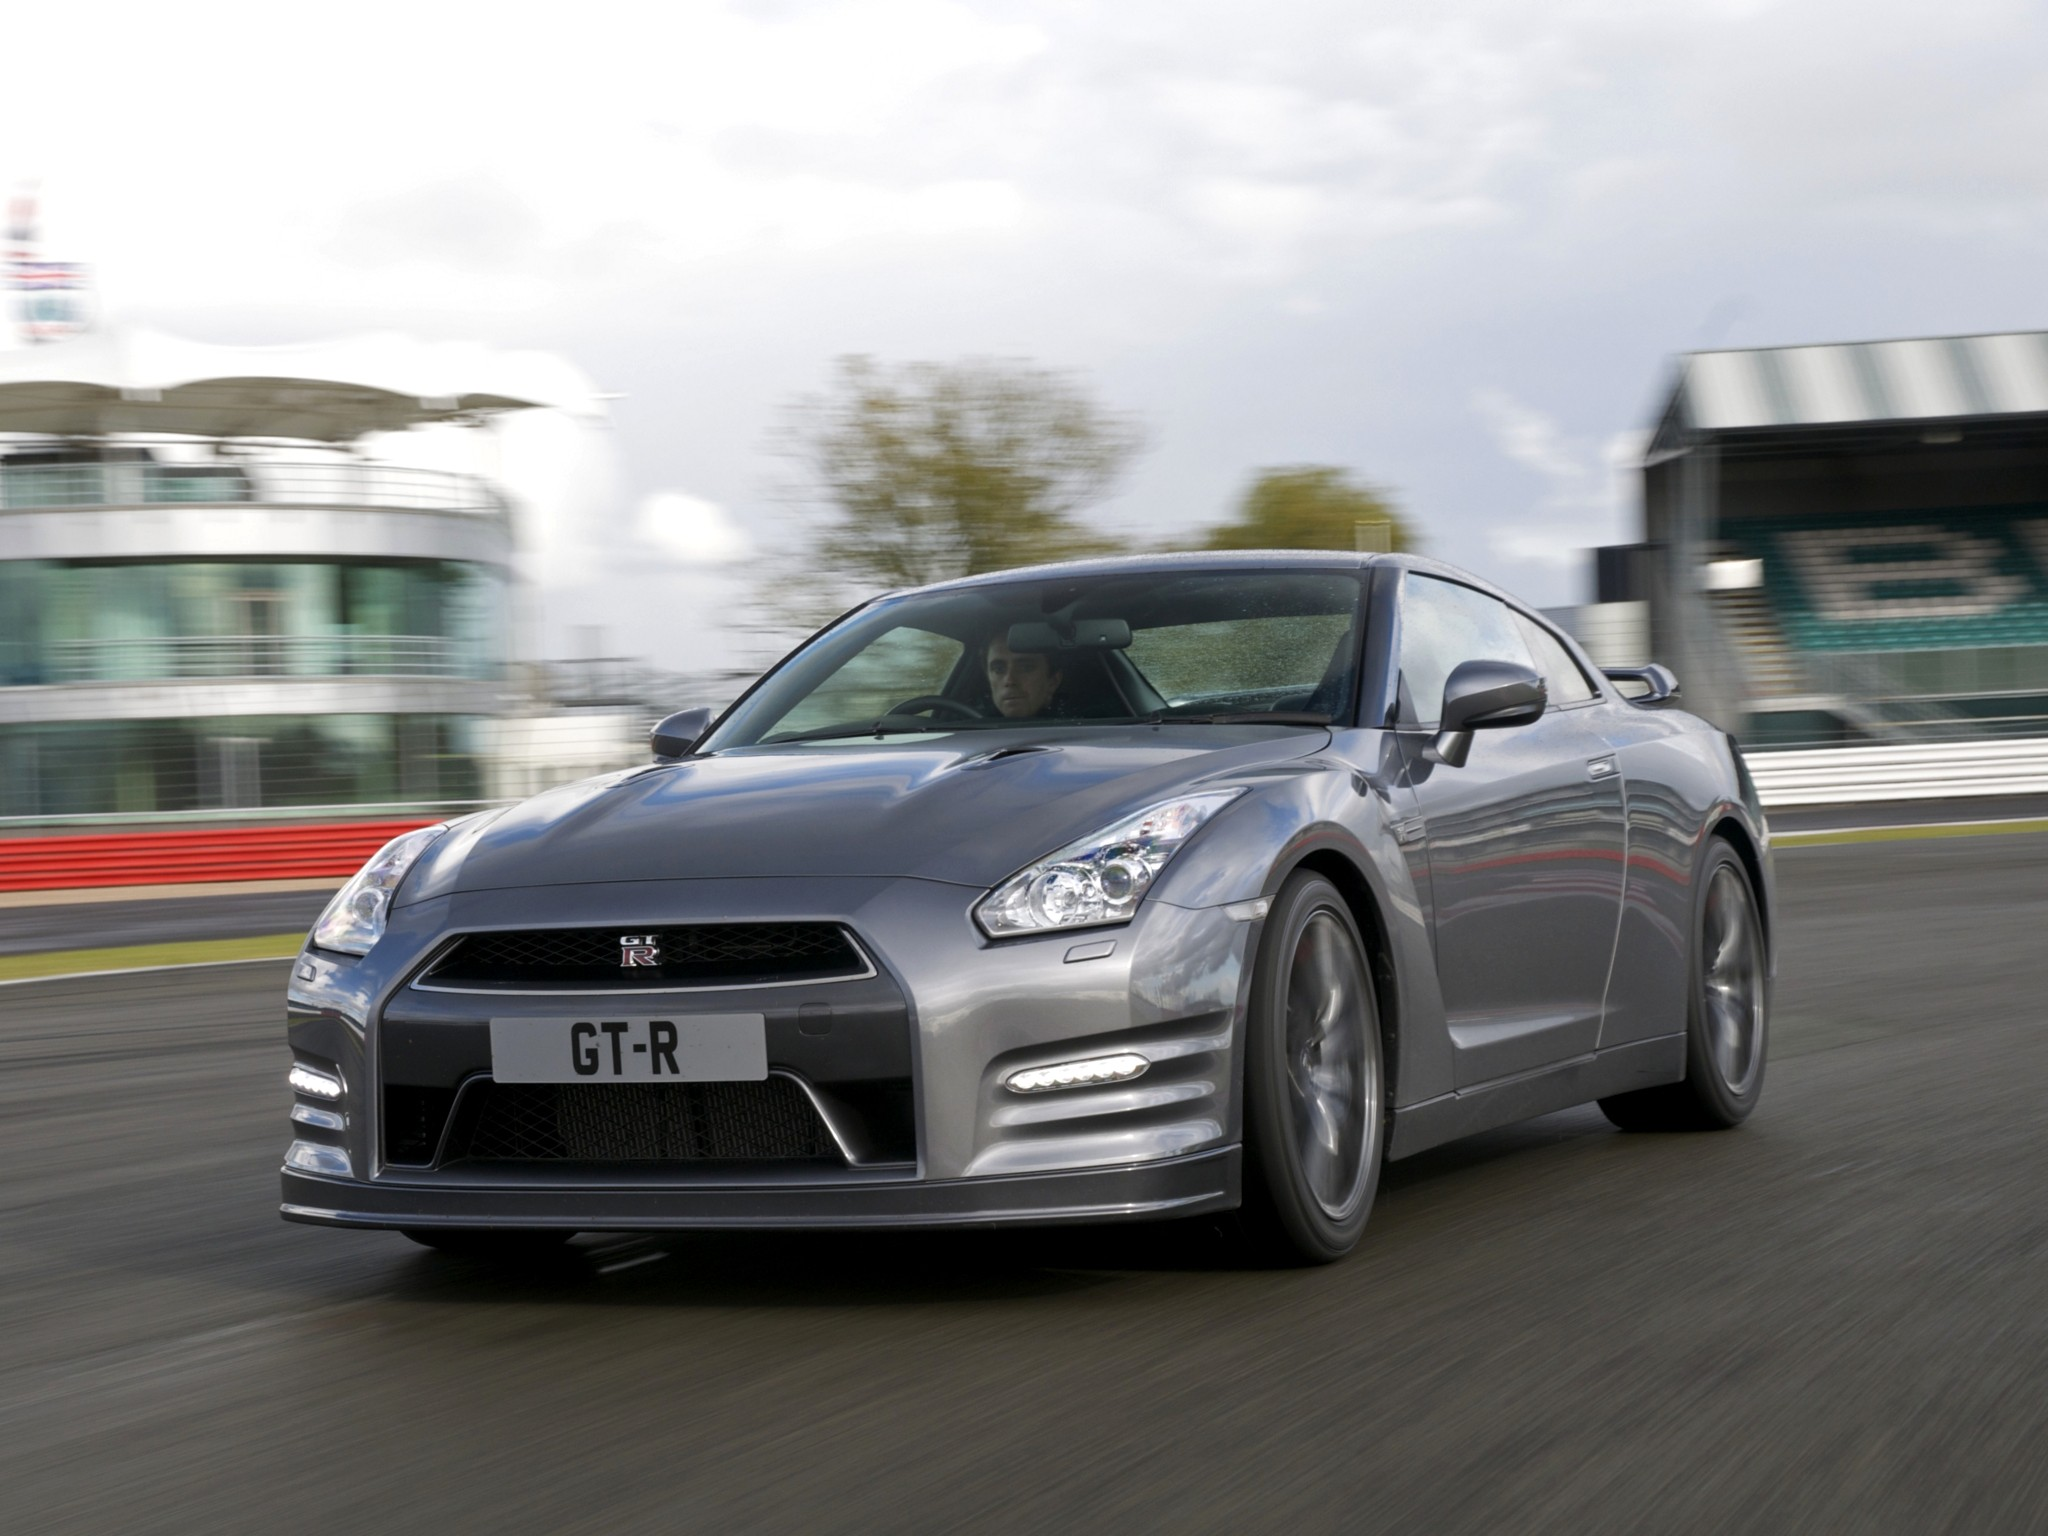 nissan gt r r35 facelift specs 2011 2012 2013 2014 2015 2016 autoevolution. Black Bedroom Furniture Sets. Home Design Ideas